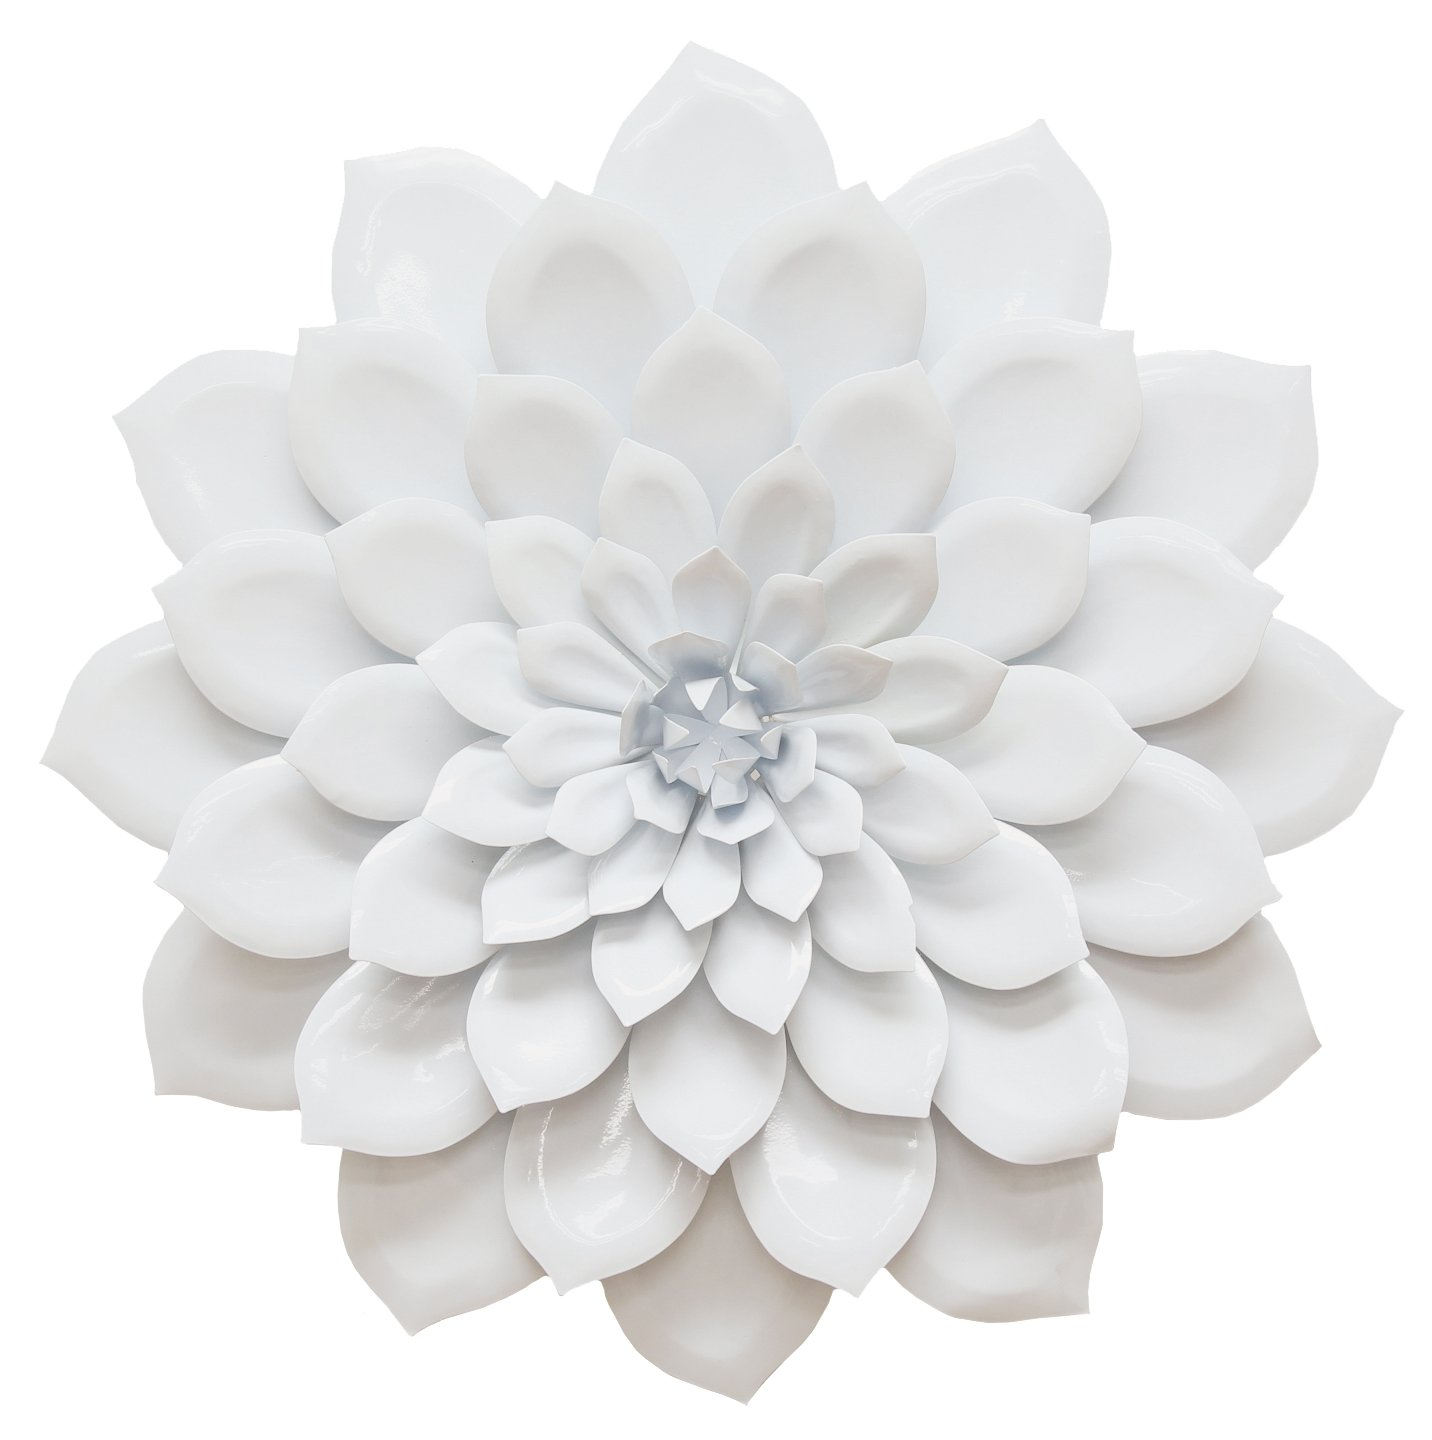 Amazon.com: Stratton Home Decor SHD0018 Layered Flower Wall Decor: Home U0026  Kitchen